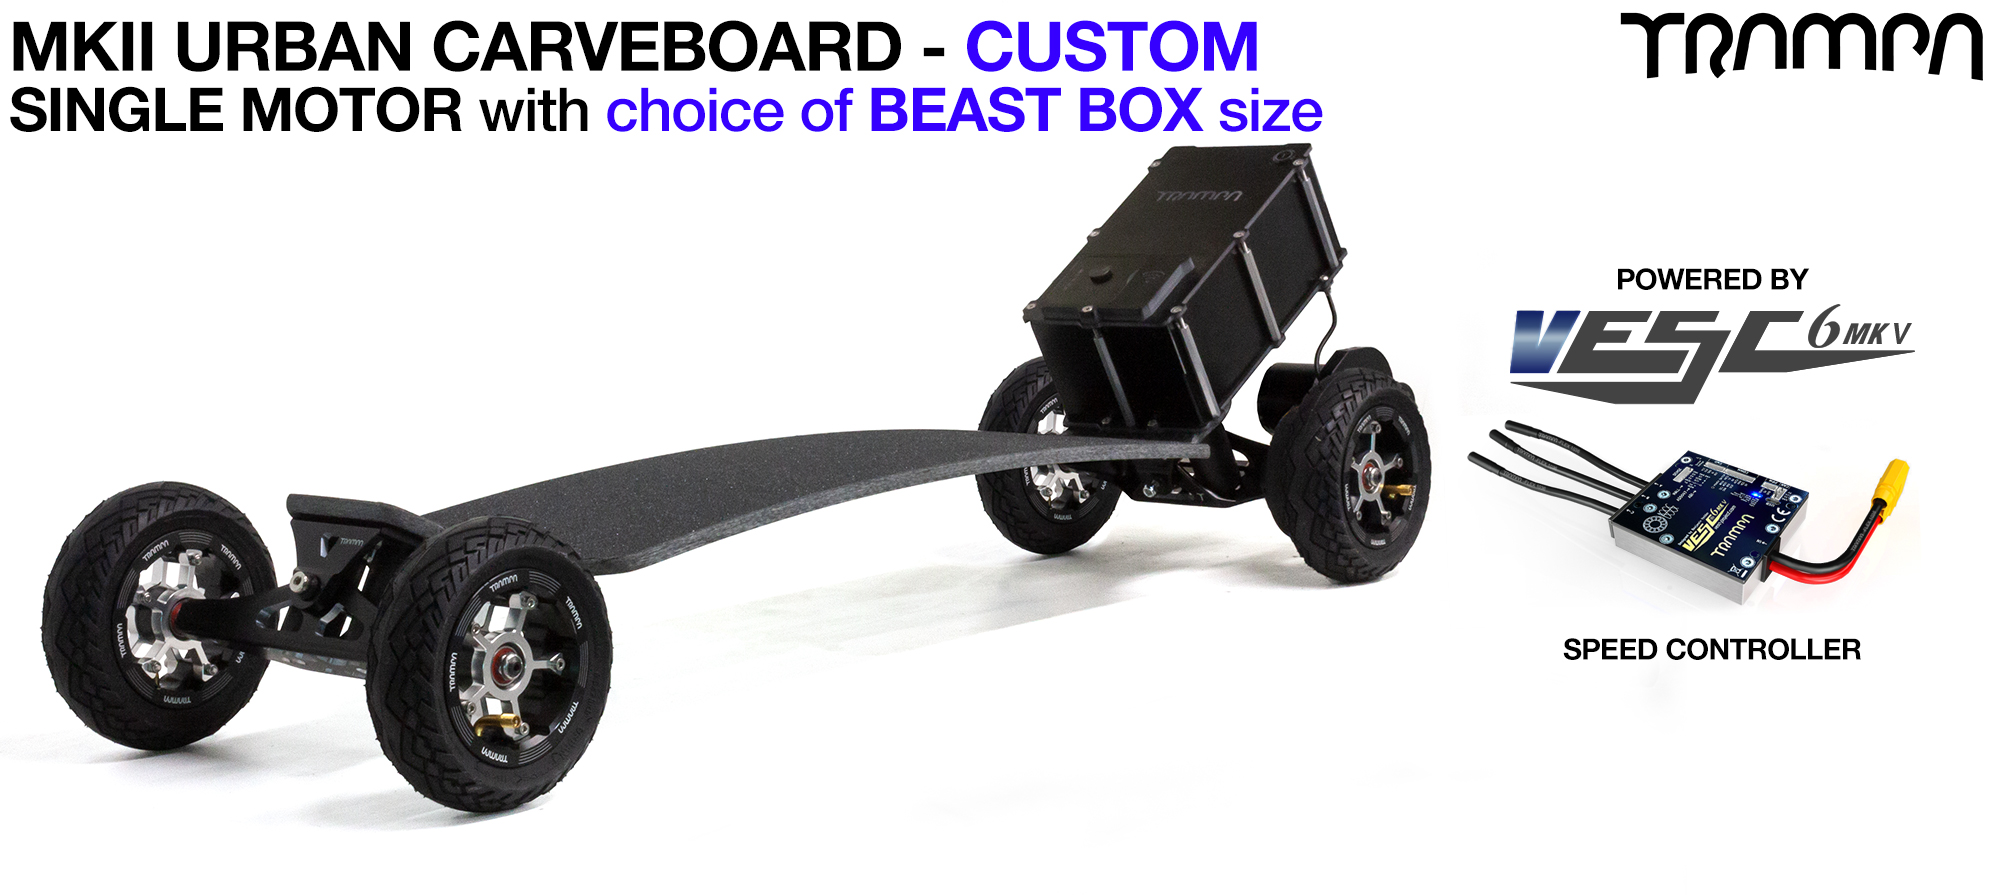 MkII TRAMPA Electric URBAN Carveboard with V6 VESC & 6.2A BEAST Box Mini Spring Trucks with 6 or 7 inch Wheels - SINGLE Motor CUSTOM